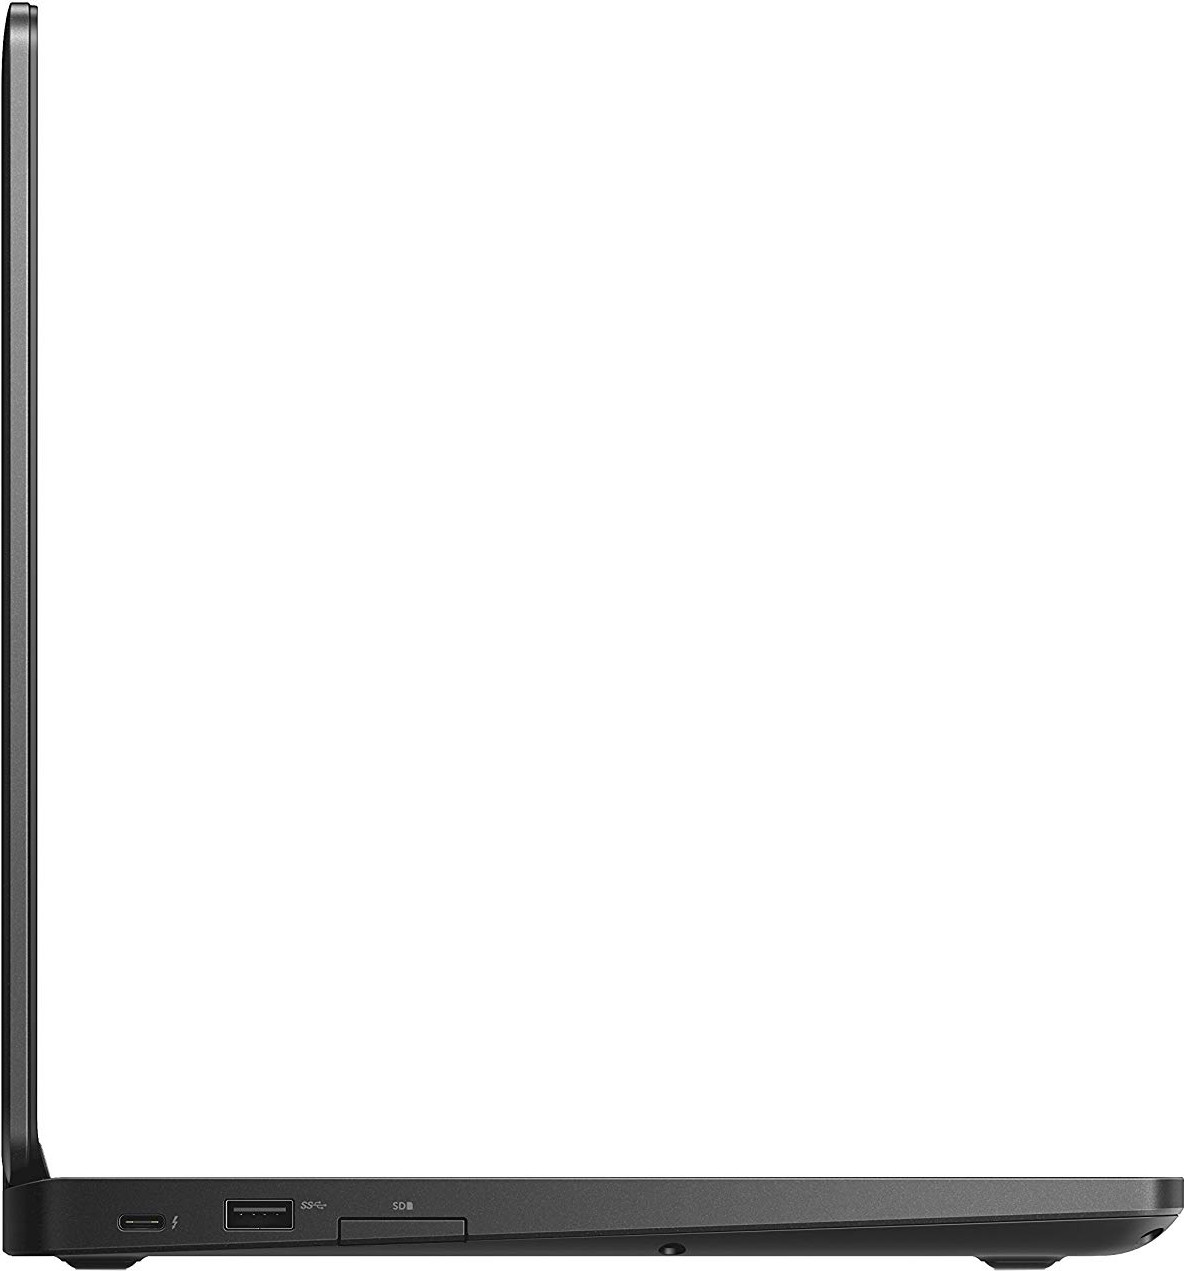 "Dell Latitude 5490 RP23X Laptop (Windows 10 Pro, Intel i5-8350U, 14"" LCD Screen, Storage: 256 GB, RAM: 8 GB) Black"